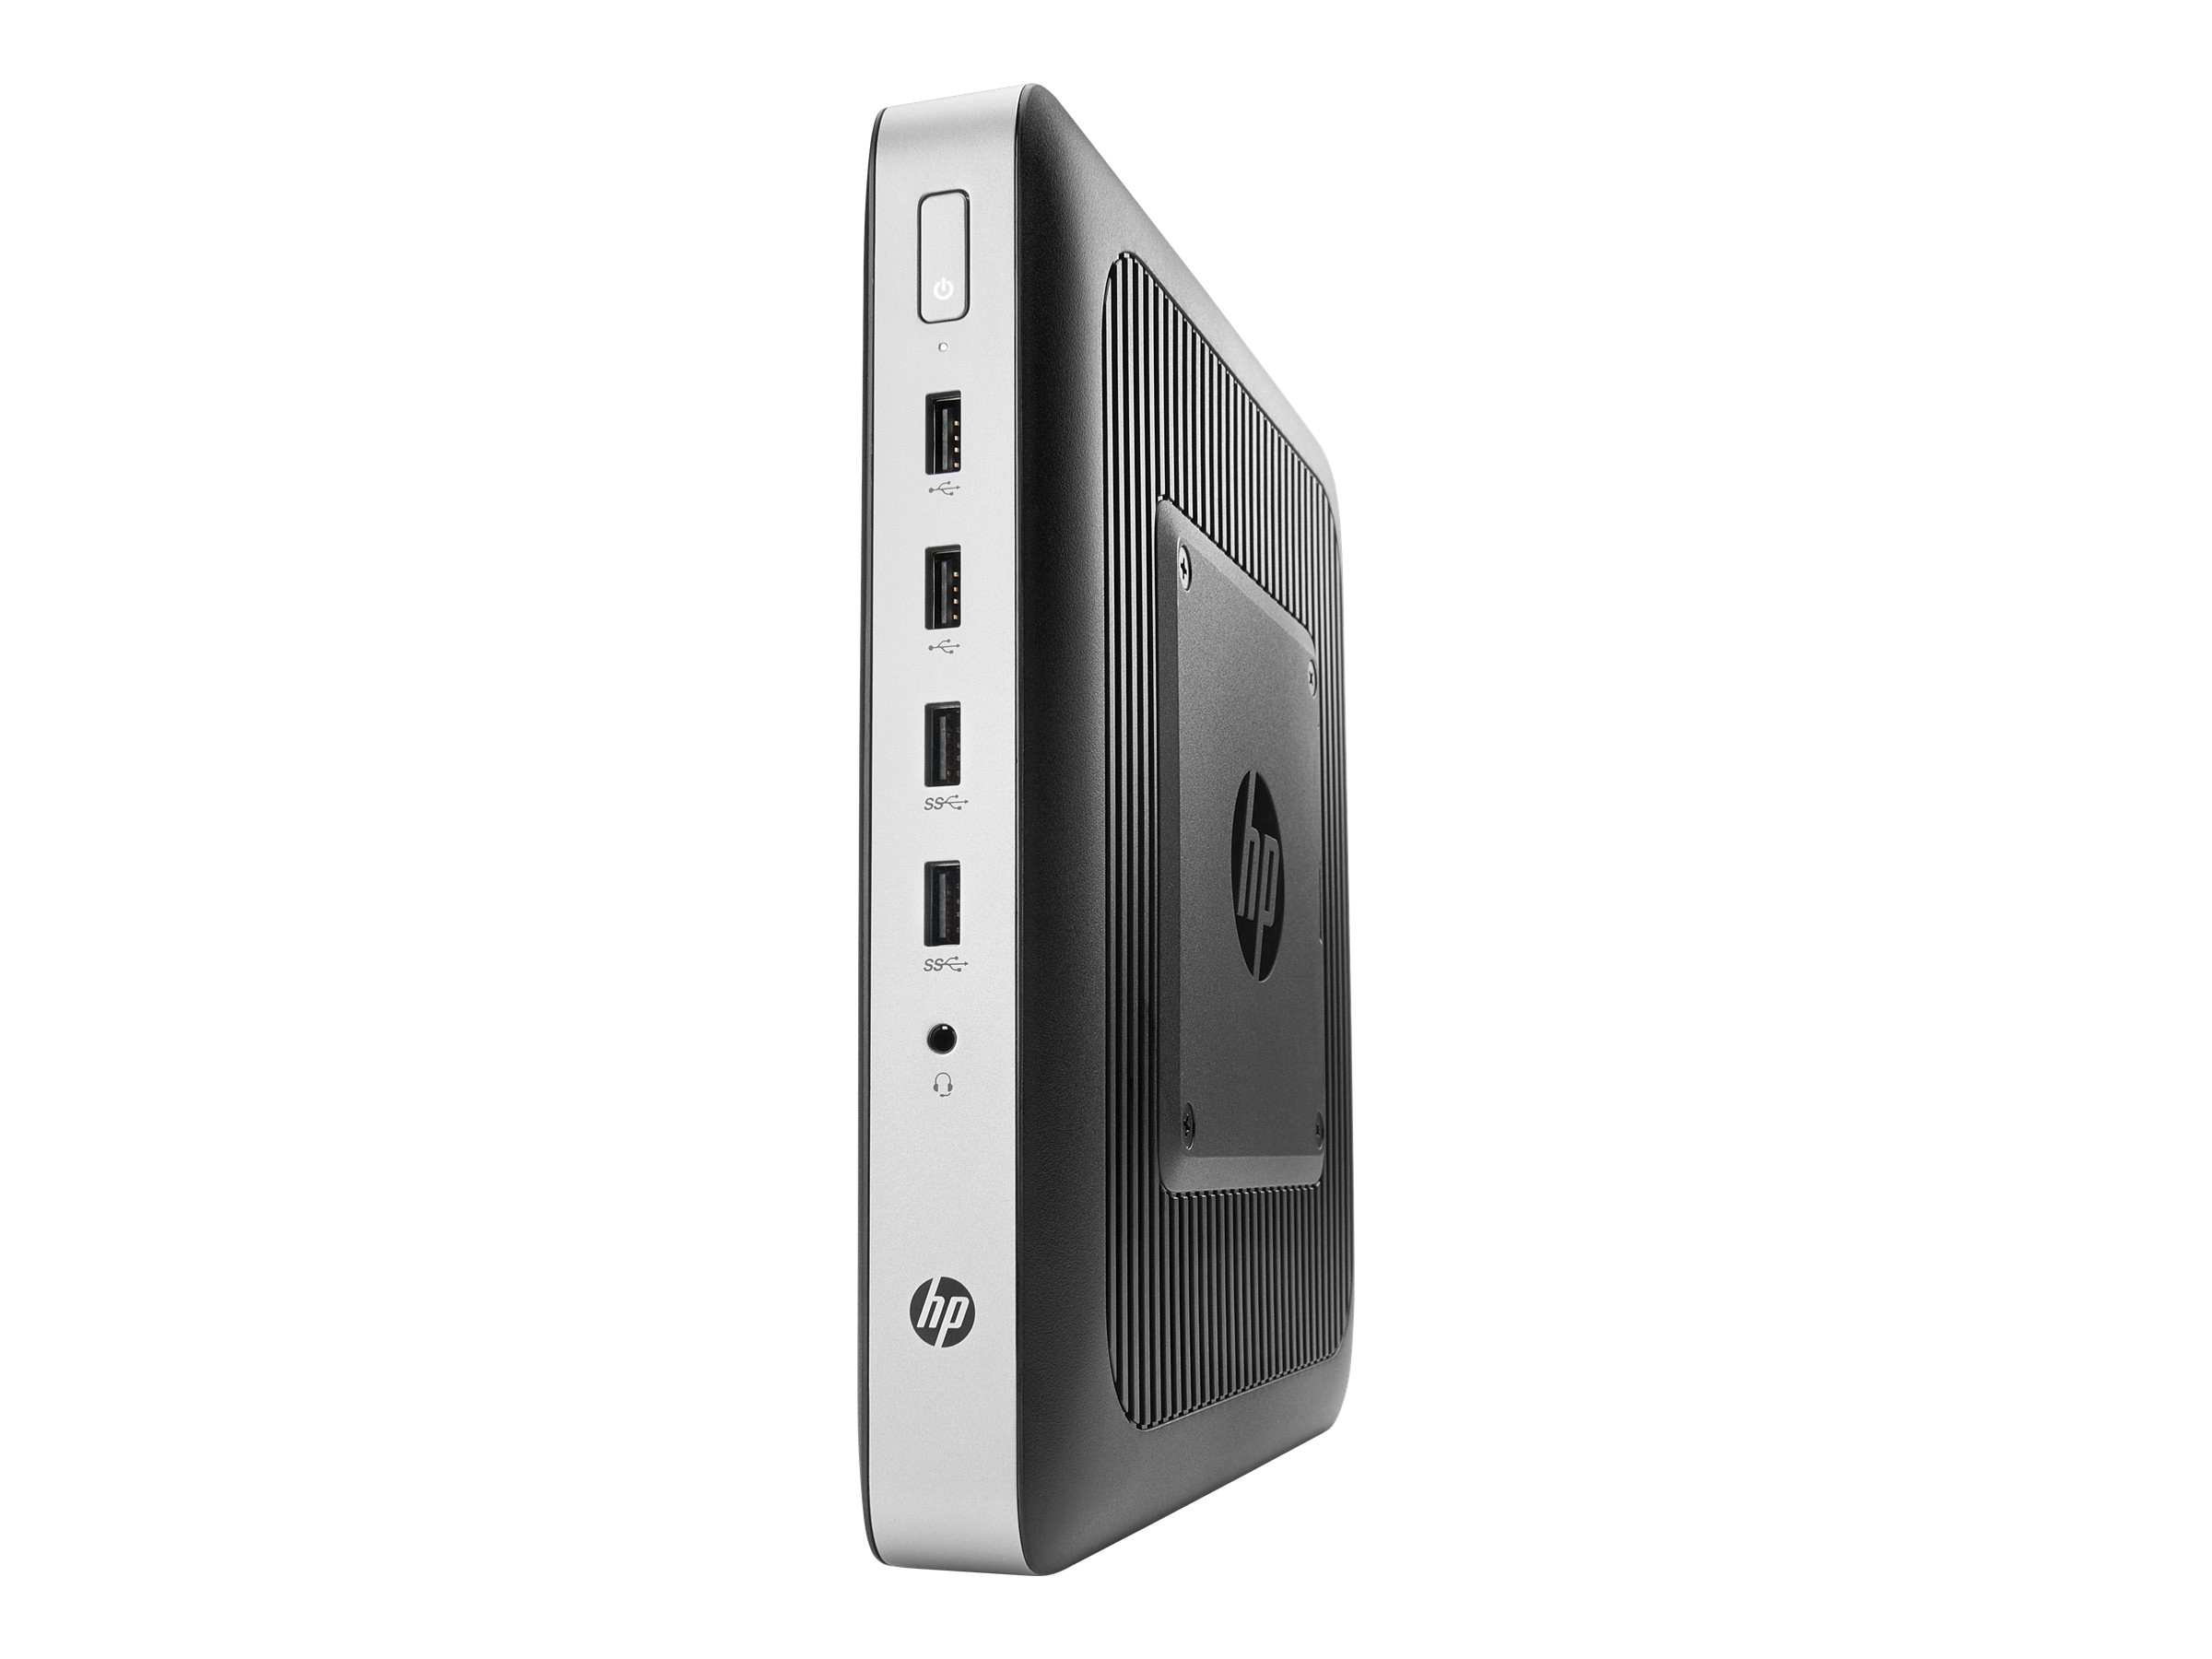 HP t630 Thin Client AMD GX-420GI 2.0GHz 4GB 16GB Flash R6E GbE VGA SmartZero